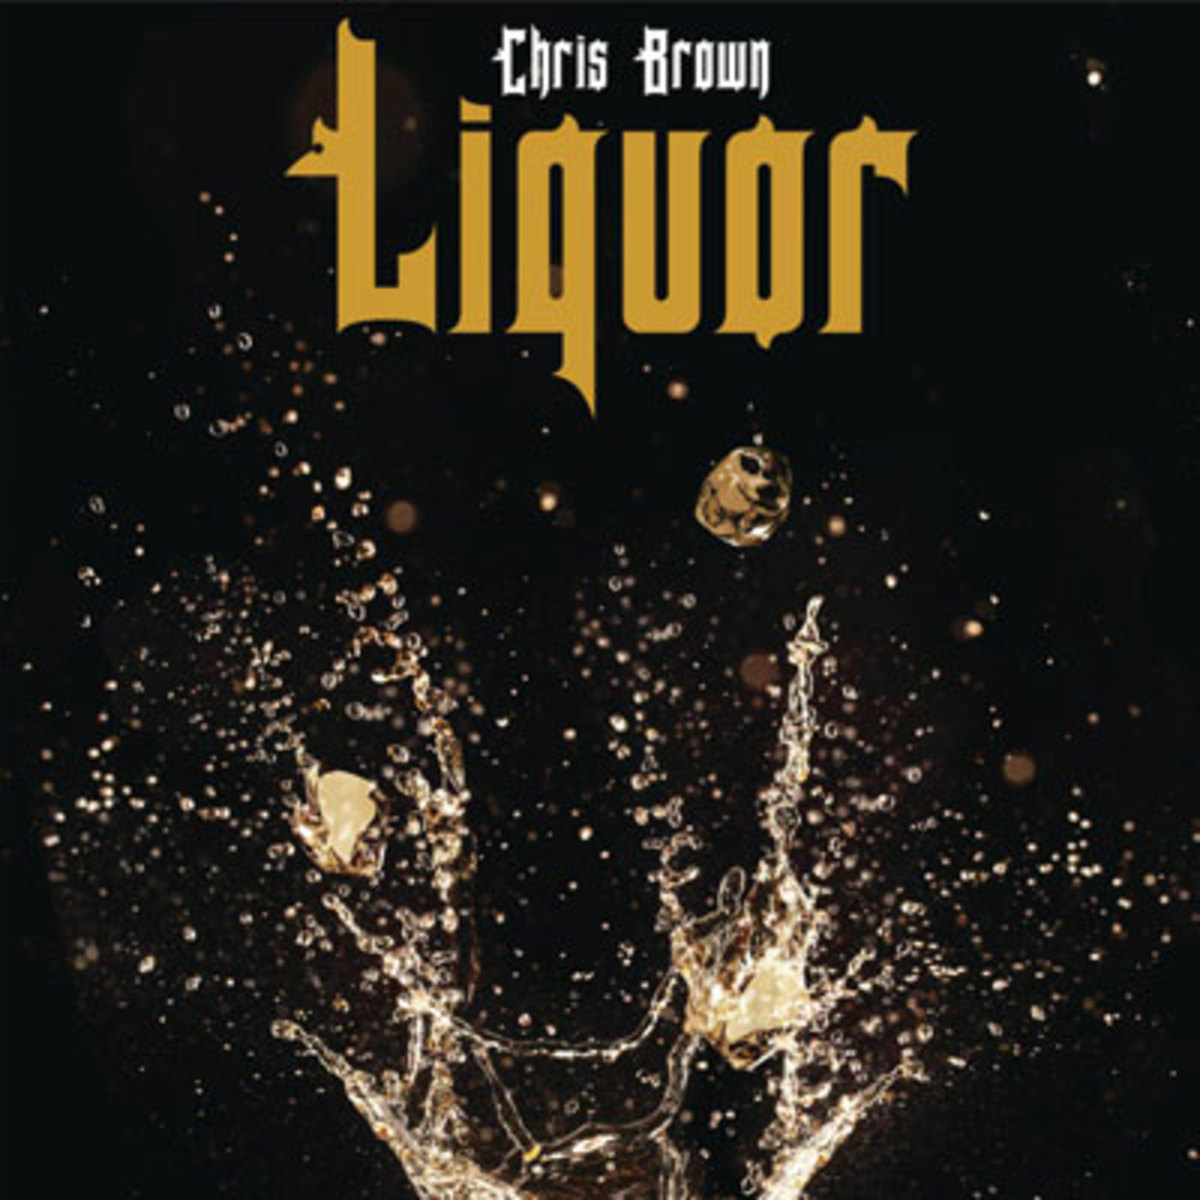 chris-brown-liquor.jpg